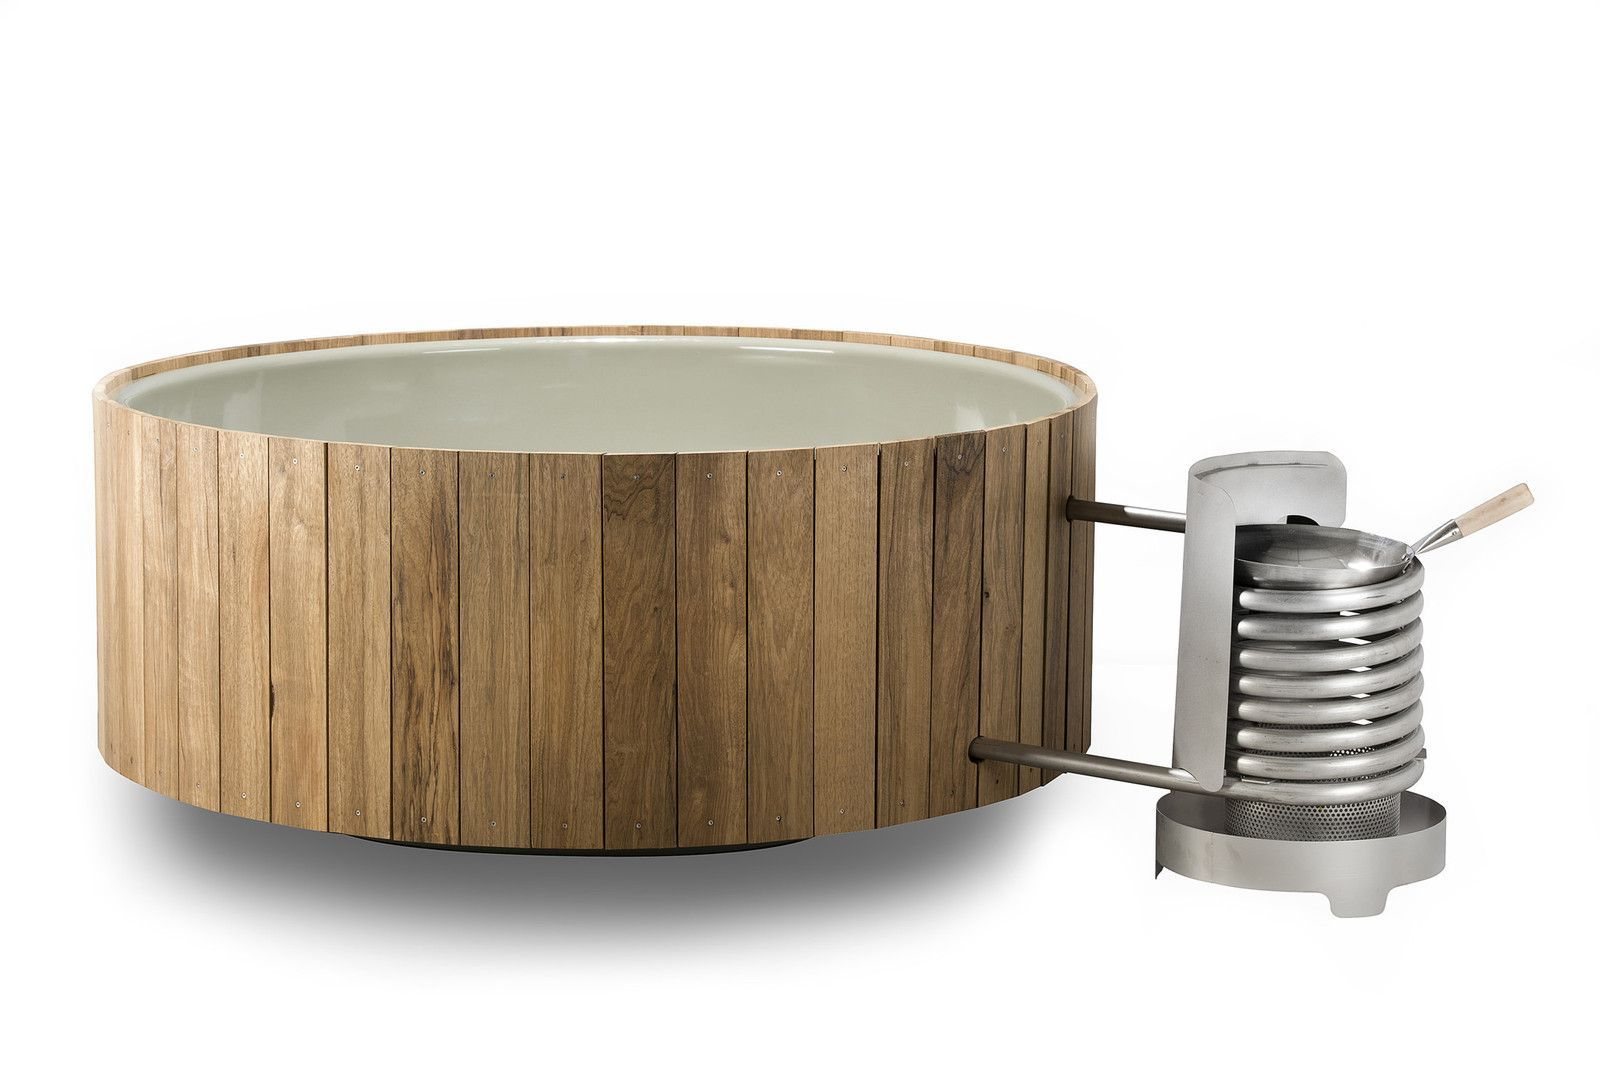 Poolheizung Winter Dutchtub Wood Pool By Christoph Roeder Pinterest Jacuzzi